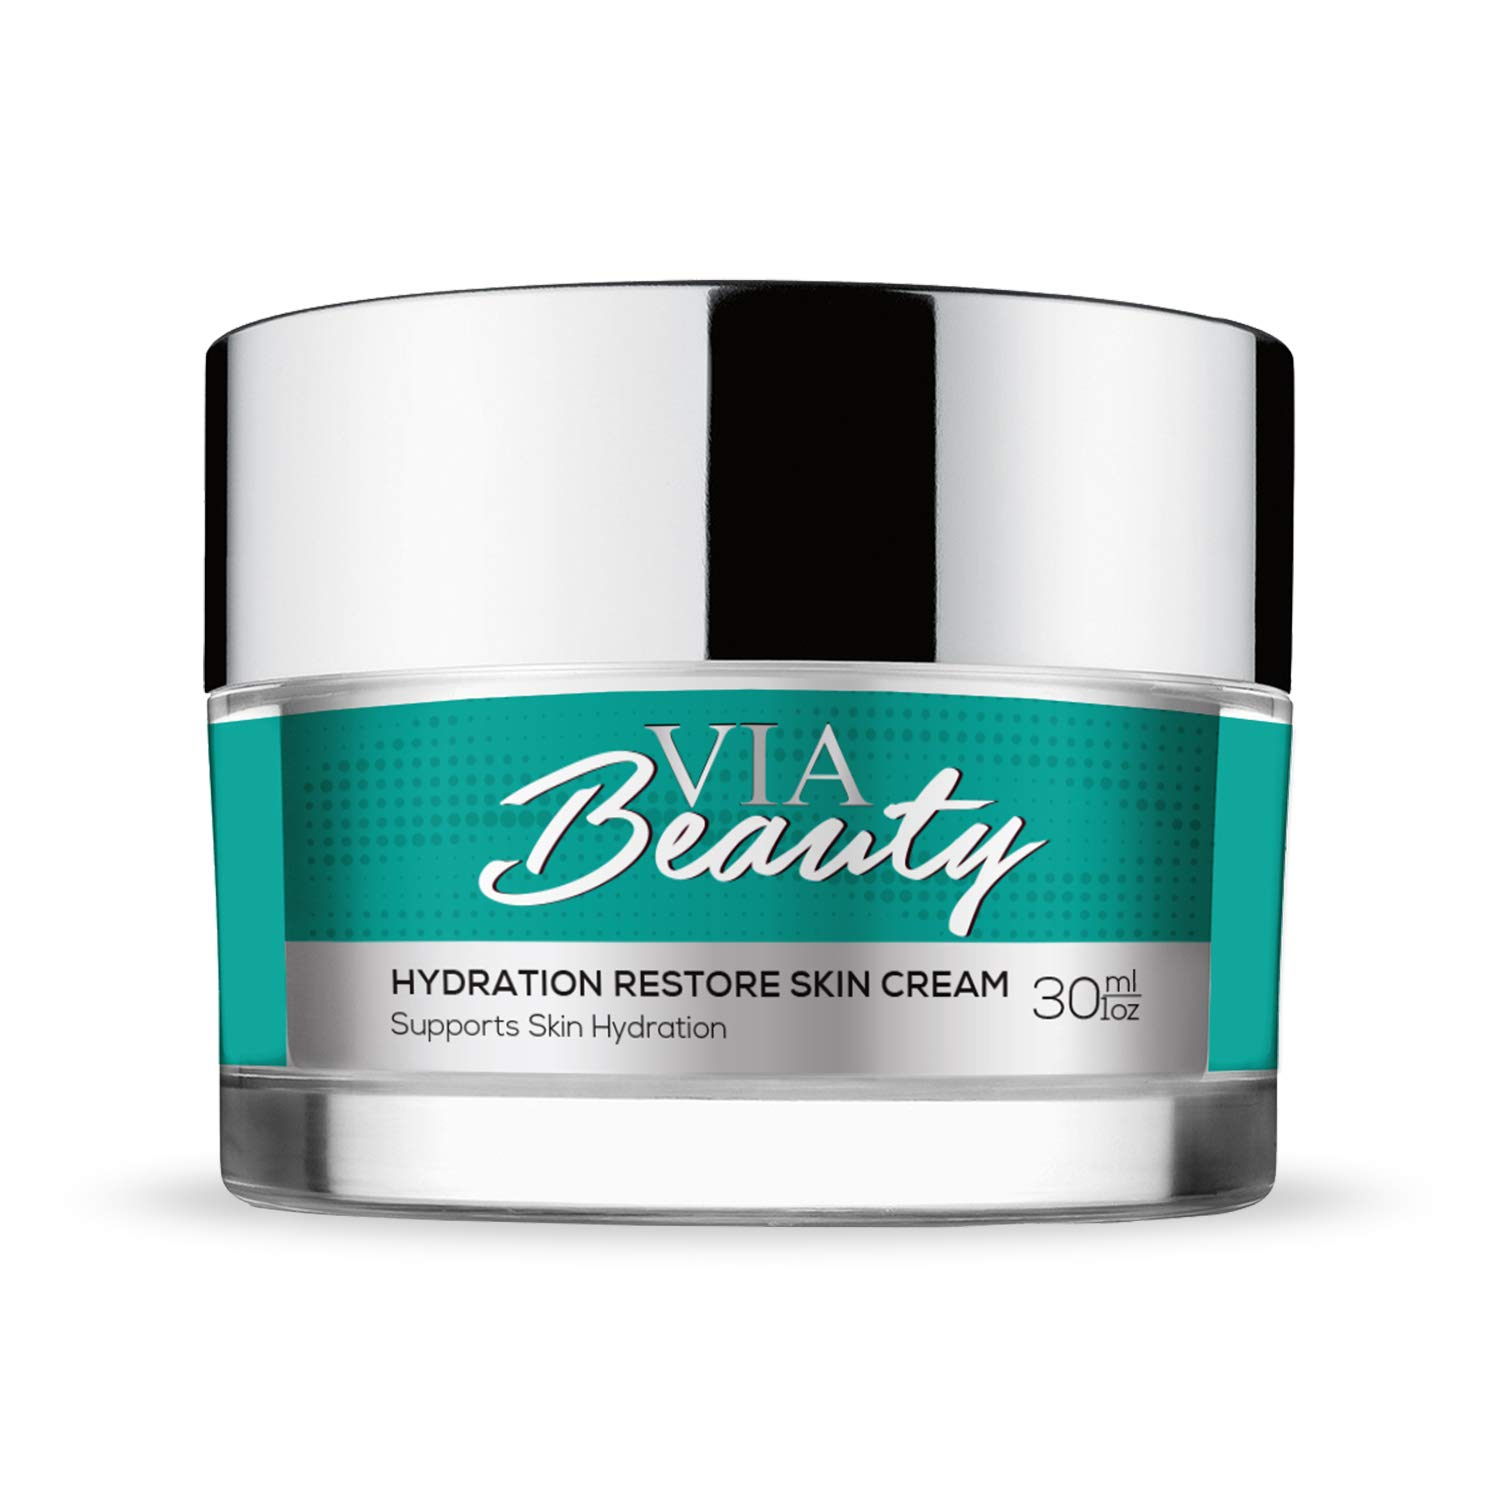 Via Beauty - Hydration Restore Skin Cream - Anti-Aging Skincare for Fine Lines and Wrinkles - Collagen Production -Supports Skin Hydration